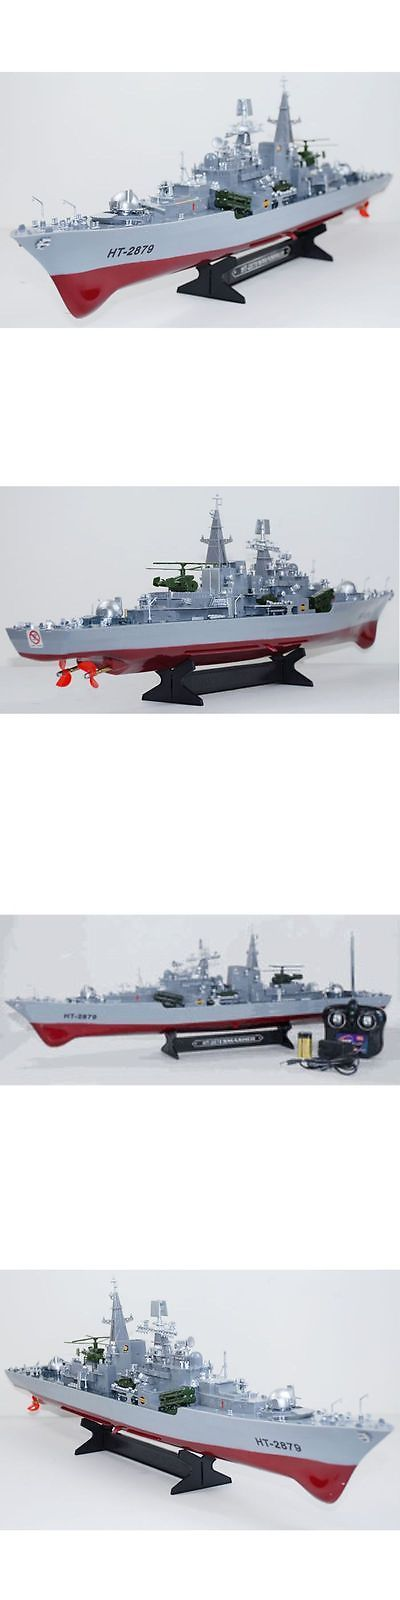 Boats and Watercraft 87480: Rc Boat 31 1:115 Destroyer Radio Remote Control Battle Ship -> BUY IT NOW ONLY: $66.39 on eBay!